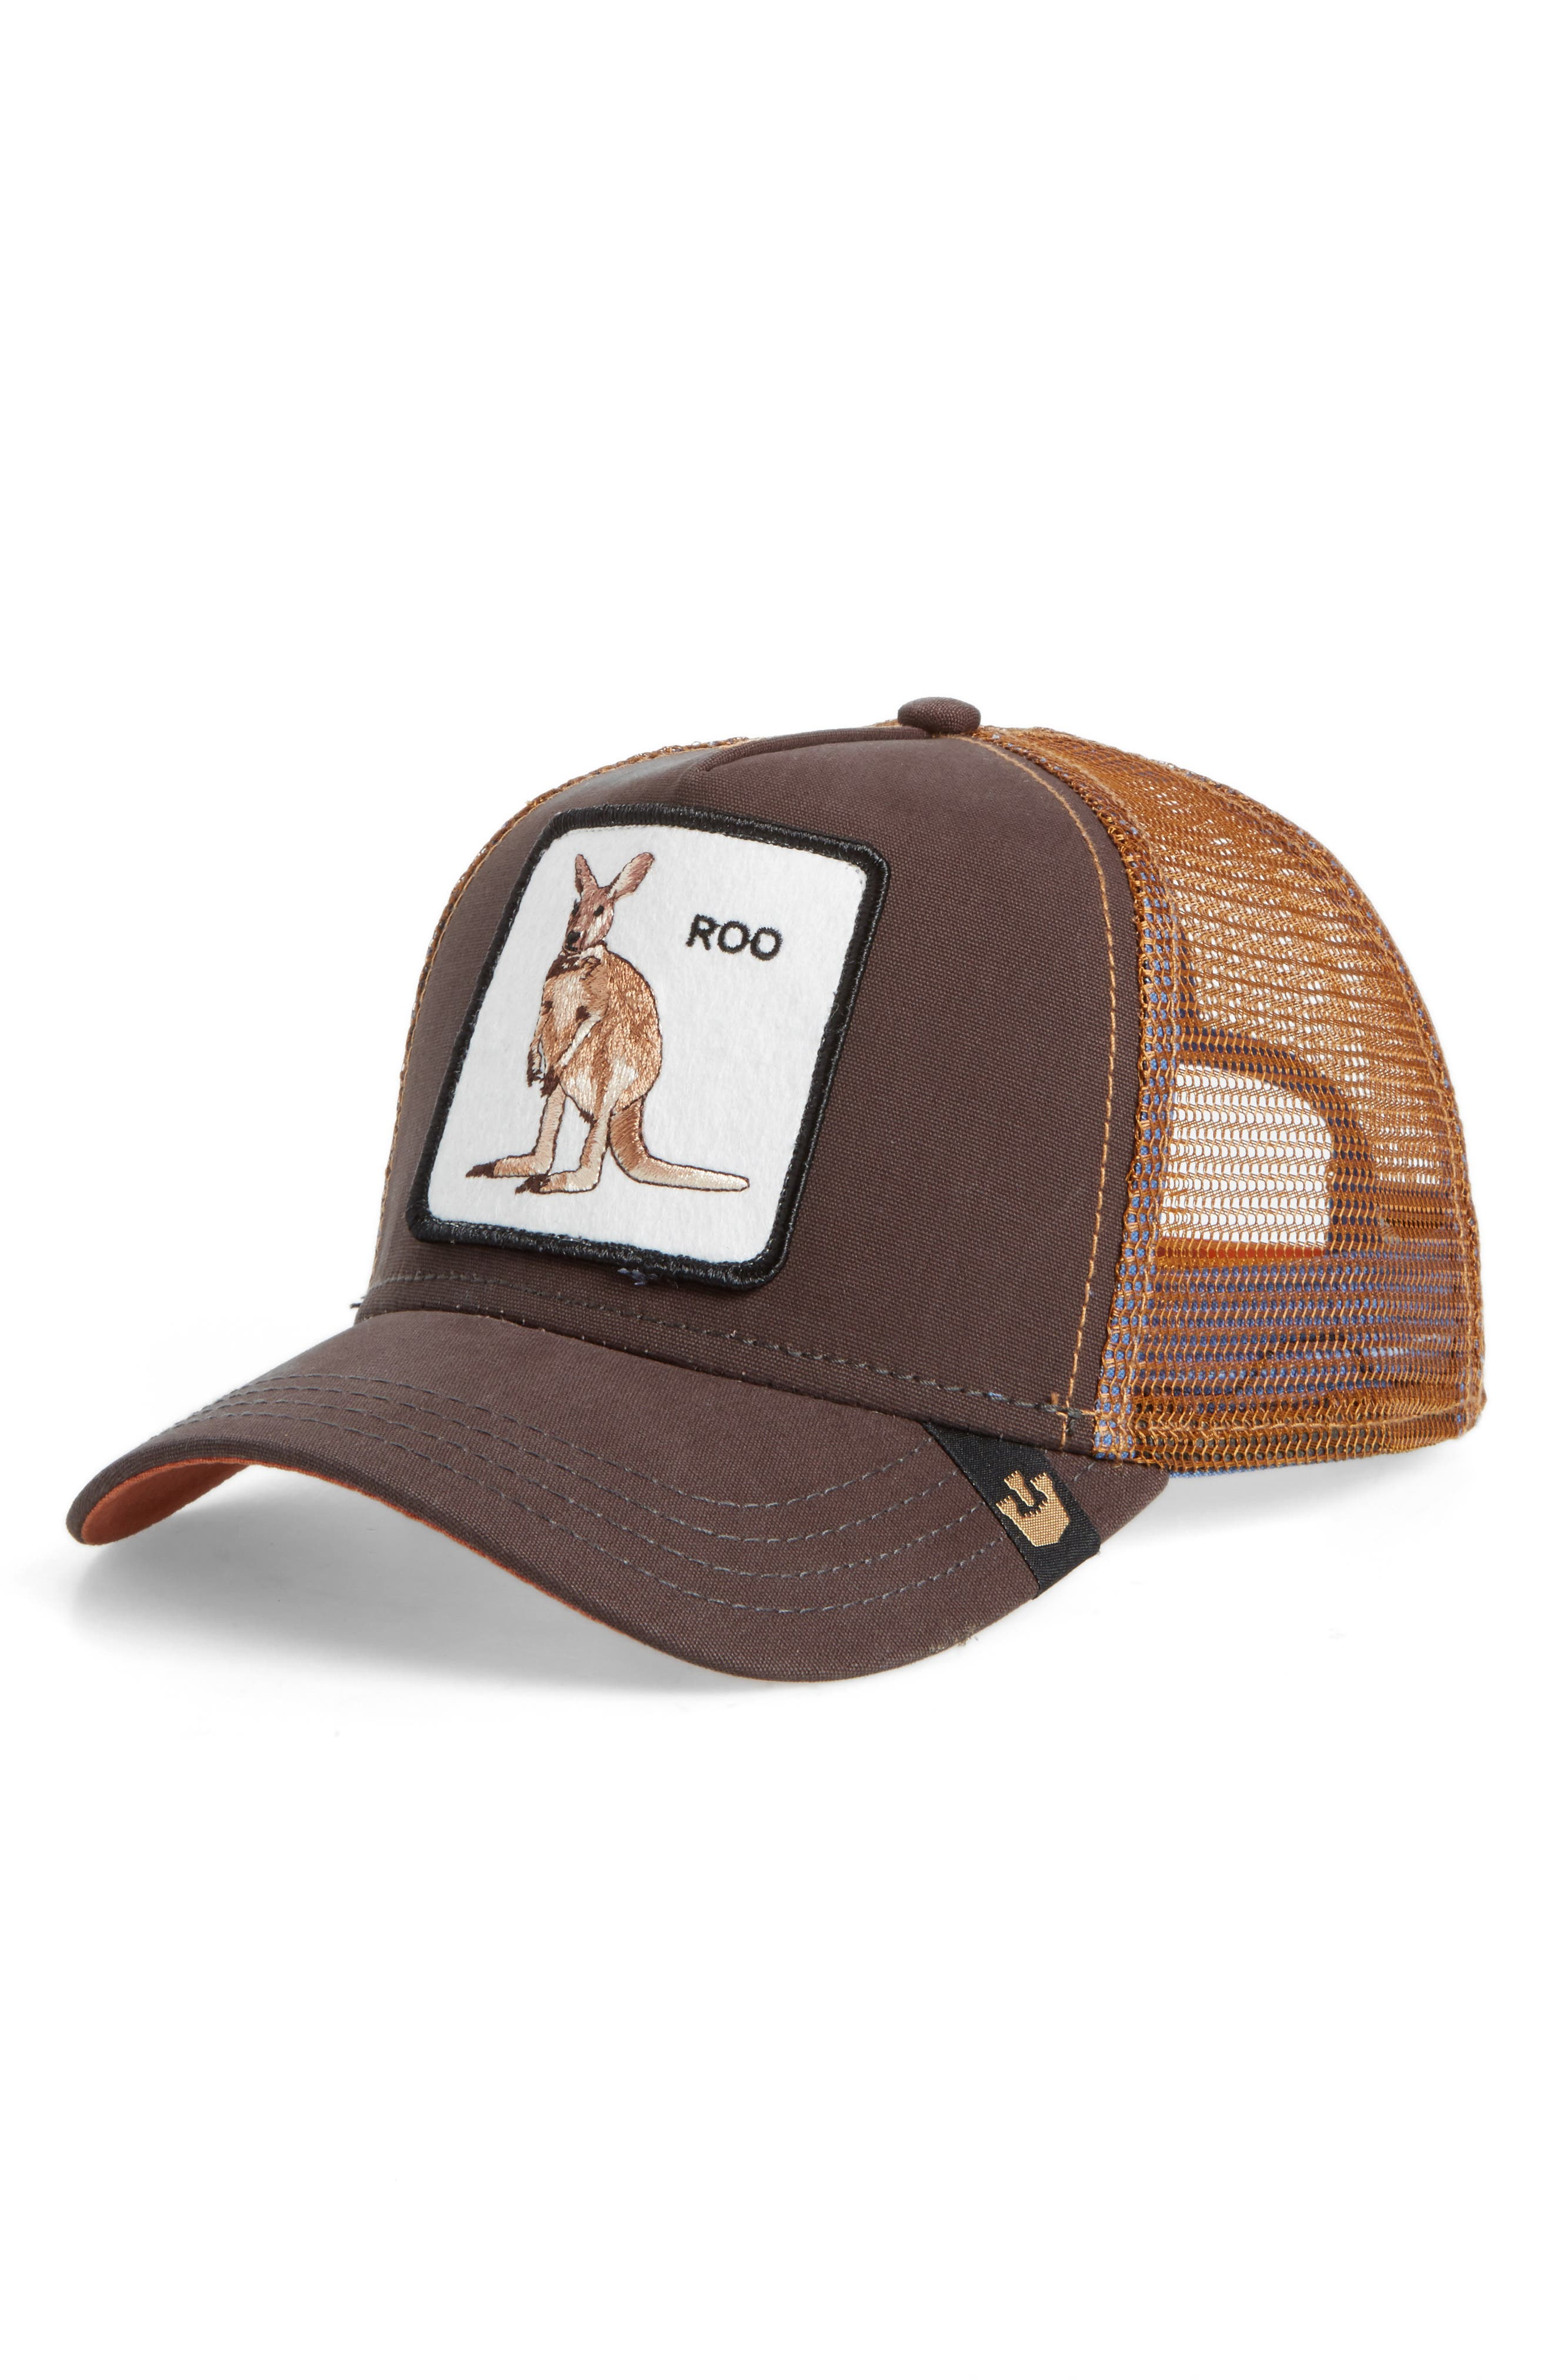 Kangaroo Trucker Hat,                             Main thumbnail 1, color,                             201